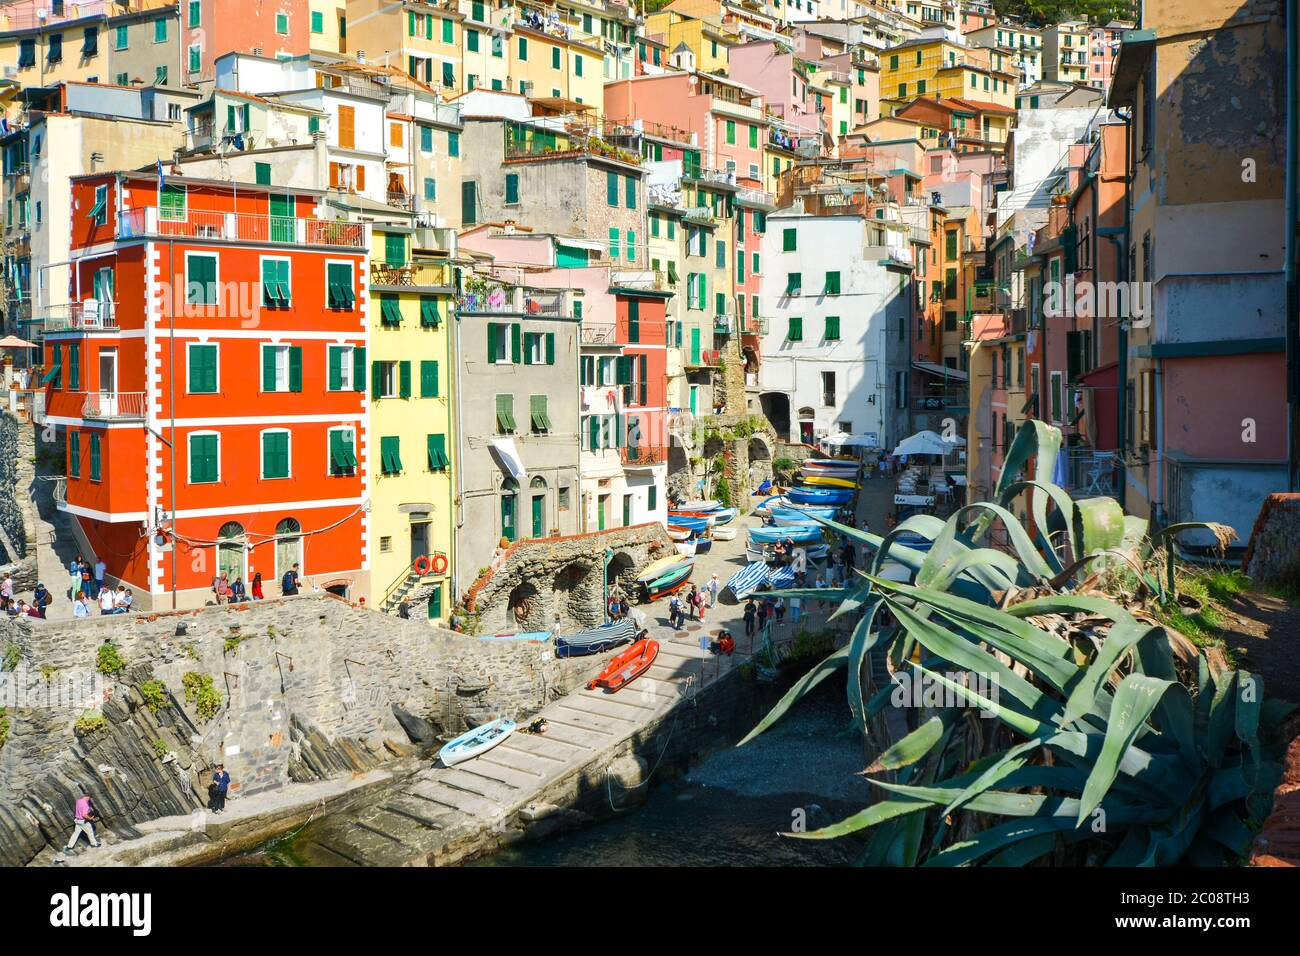 The colorful village of Riomaggiore, Italy, one of the five villages that make up the Cinque Terre. Stock Photo